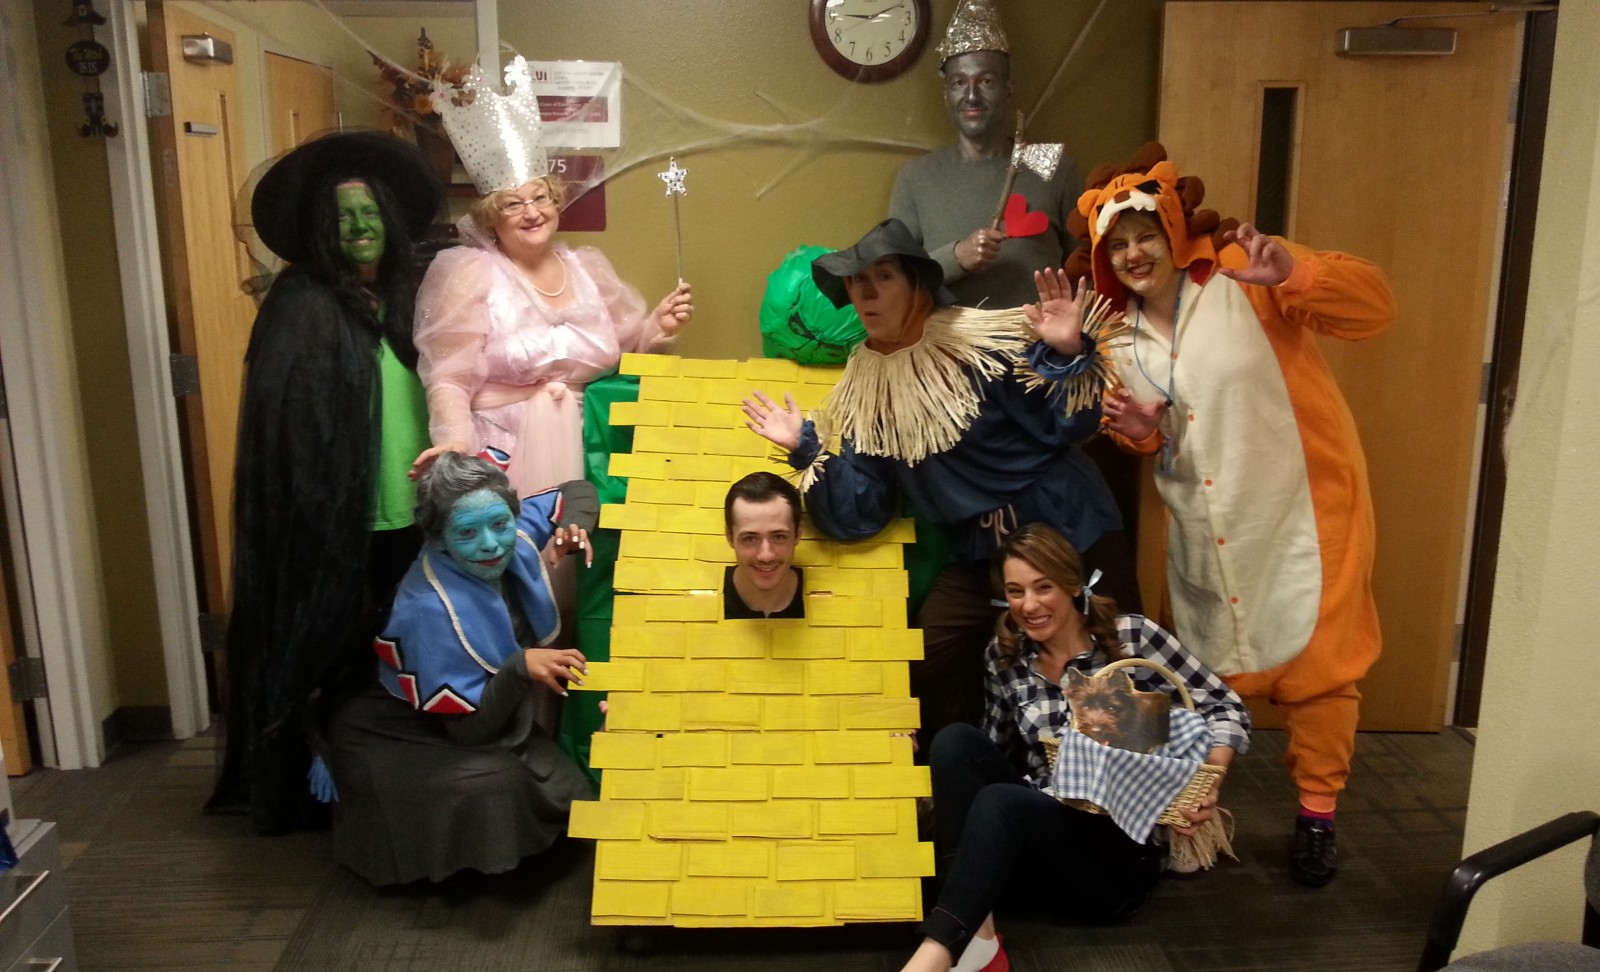 Best Group winners, Wizard Oz at Canyon County Center